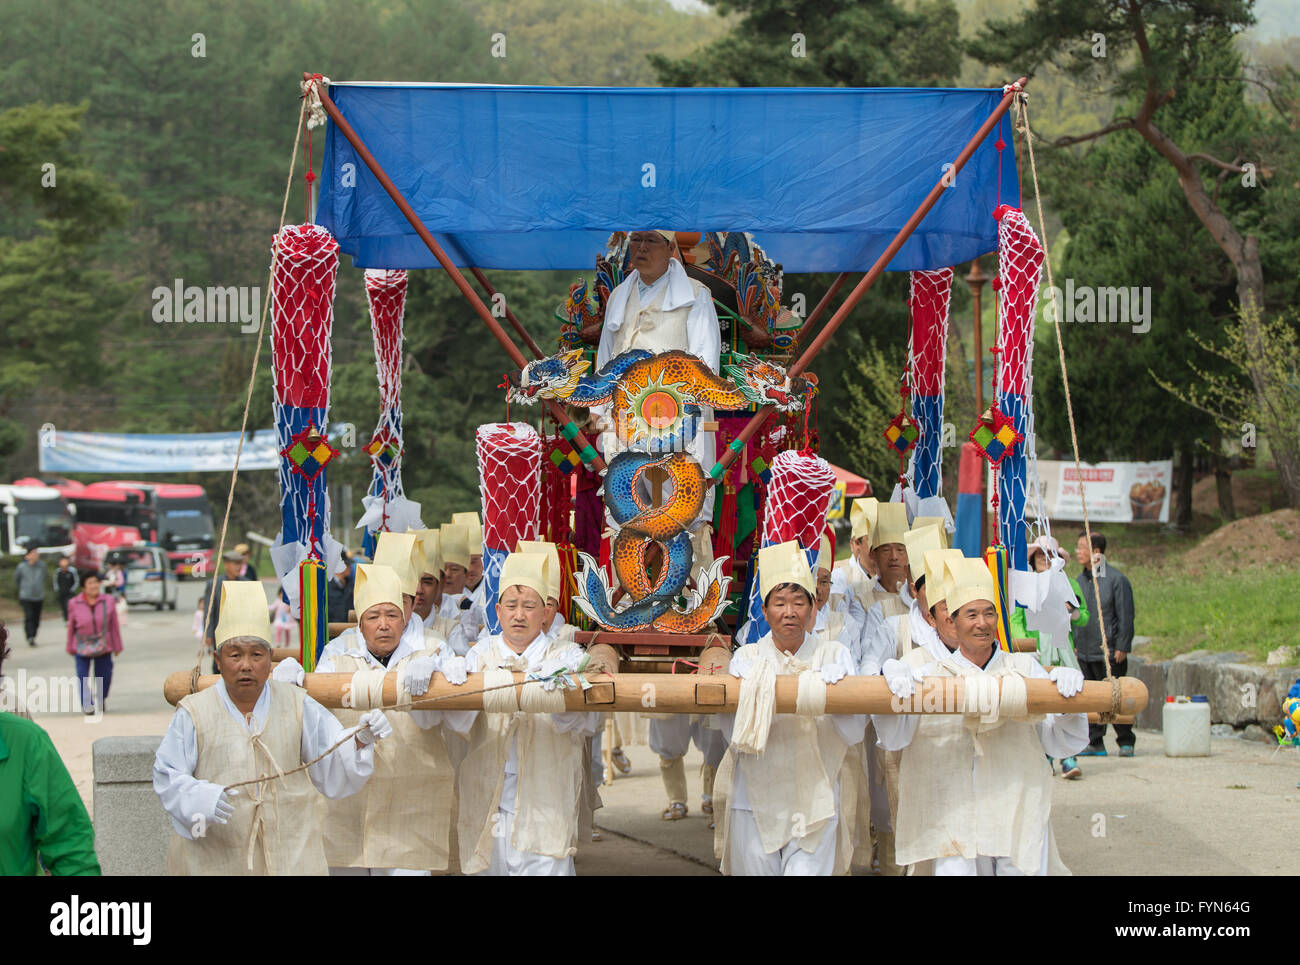 Gyeonggi-do, South Korea - April 22, 2016: Tributes, South Korea Traditional events for the deceased - Stock Image